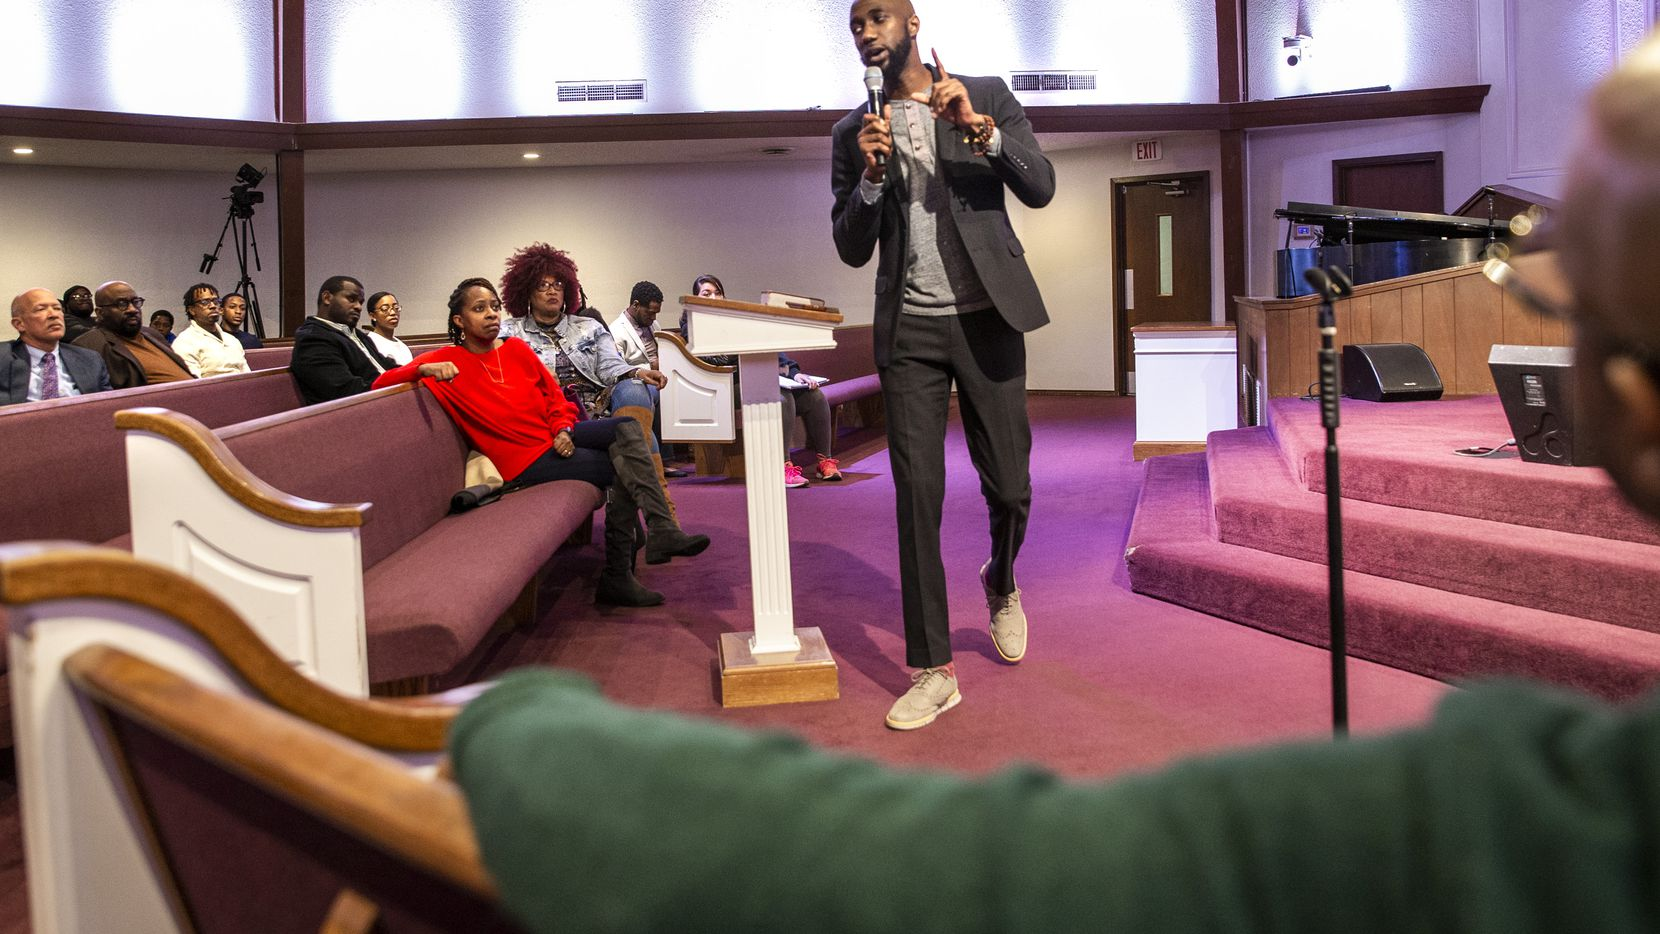 Reverend Edwin Robinson speaks to attendees at a Black Clergy meeting at the Dallas City Temple Seventh-Day Adventist Church in Dallas on Thursday, Jan, 30, 2019. Robinson and other faith leaders from Dallas talked about a community-driven vision for economic development in southern Dallas.